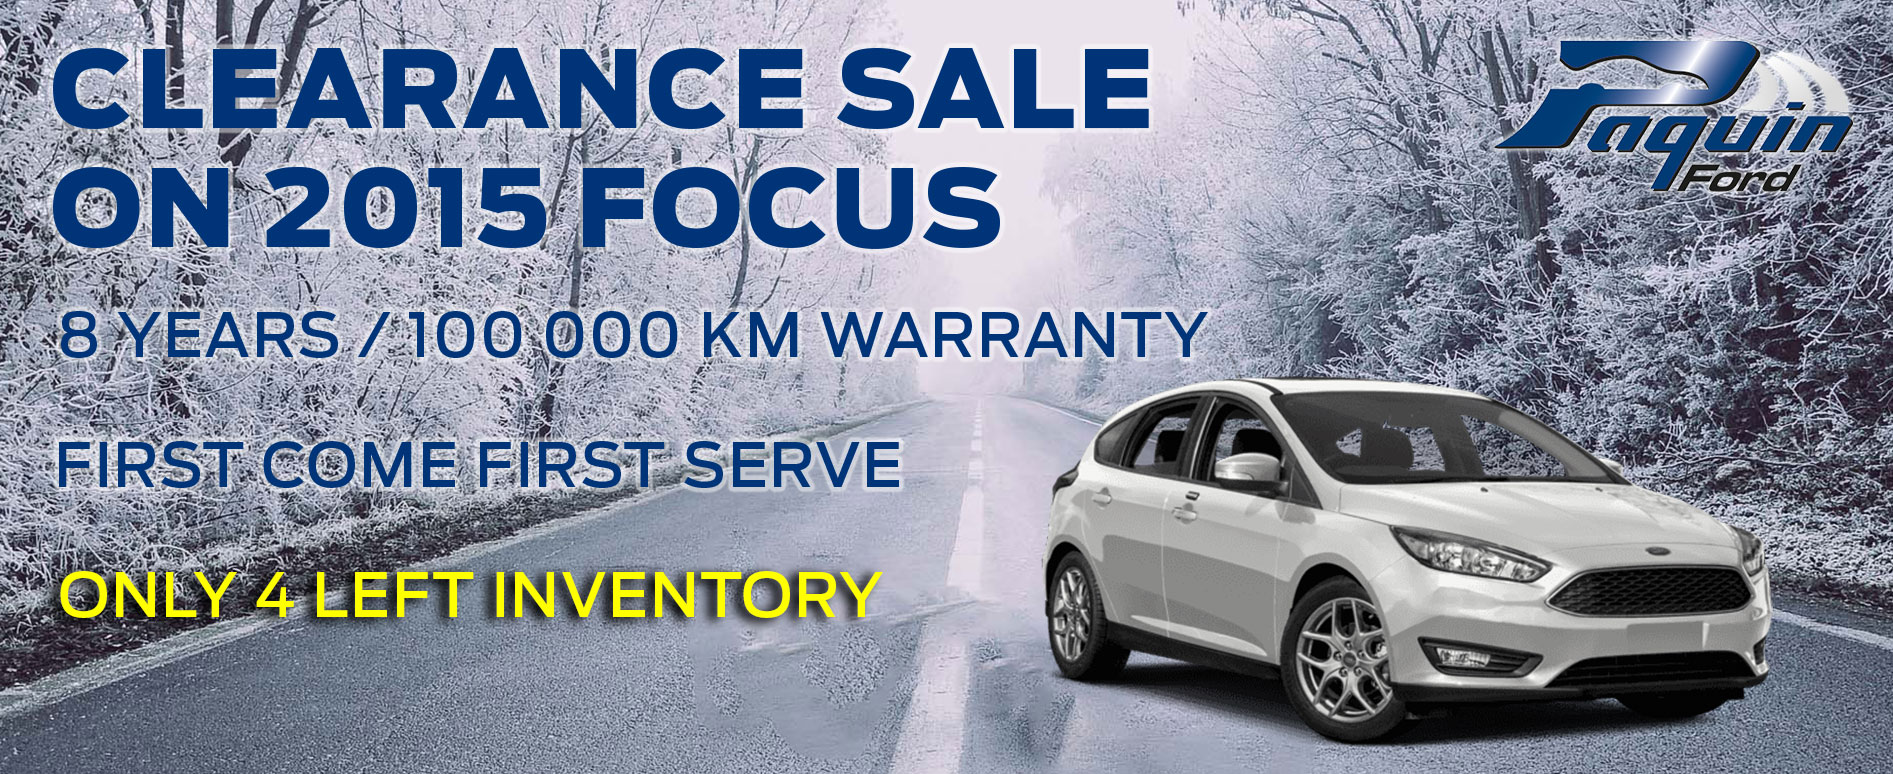 Ford Focus 2015 Paquin Ford Clearance